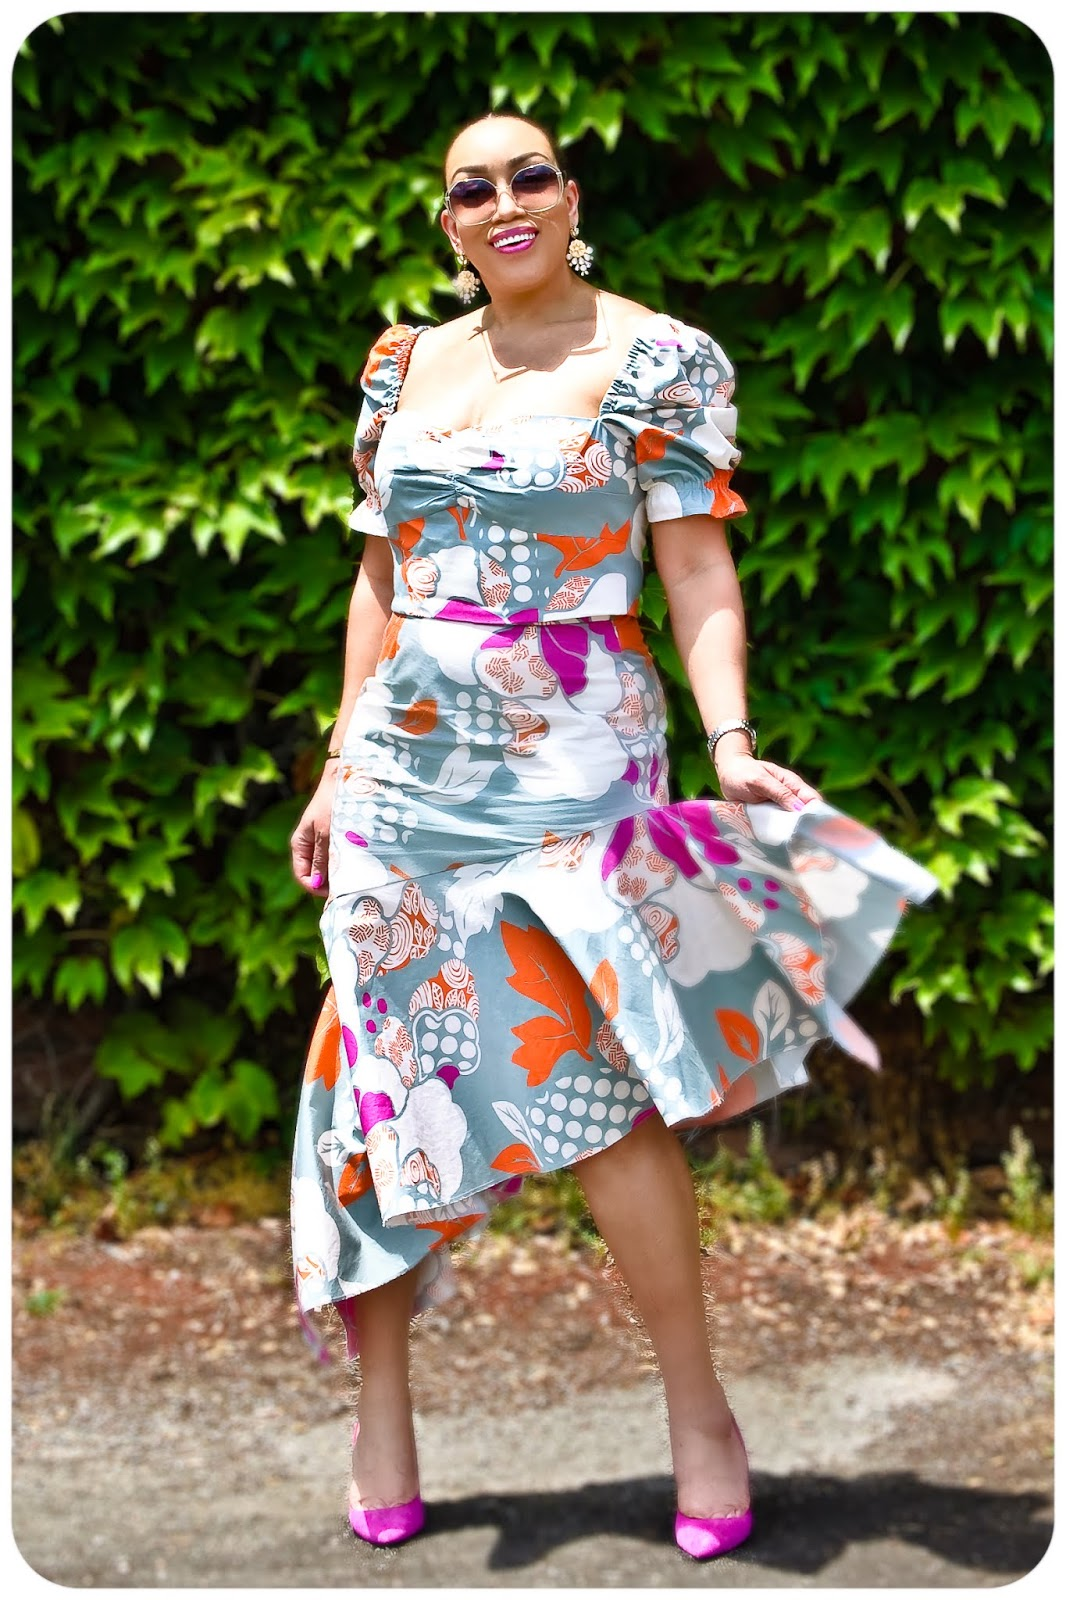 McCall's 7929 Top & McCall's 7725 Skirt - Erica Bunker DIY Style!